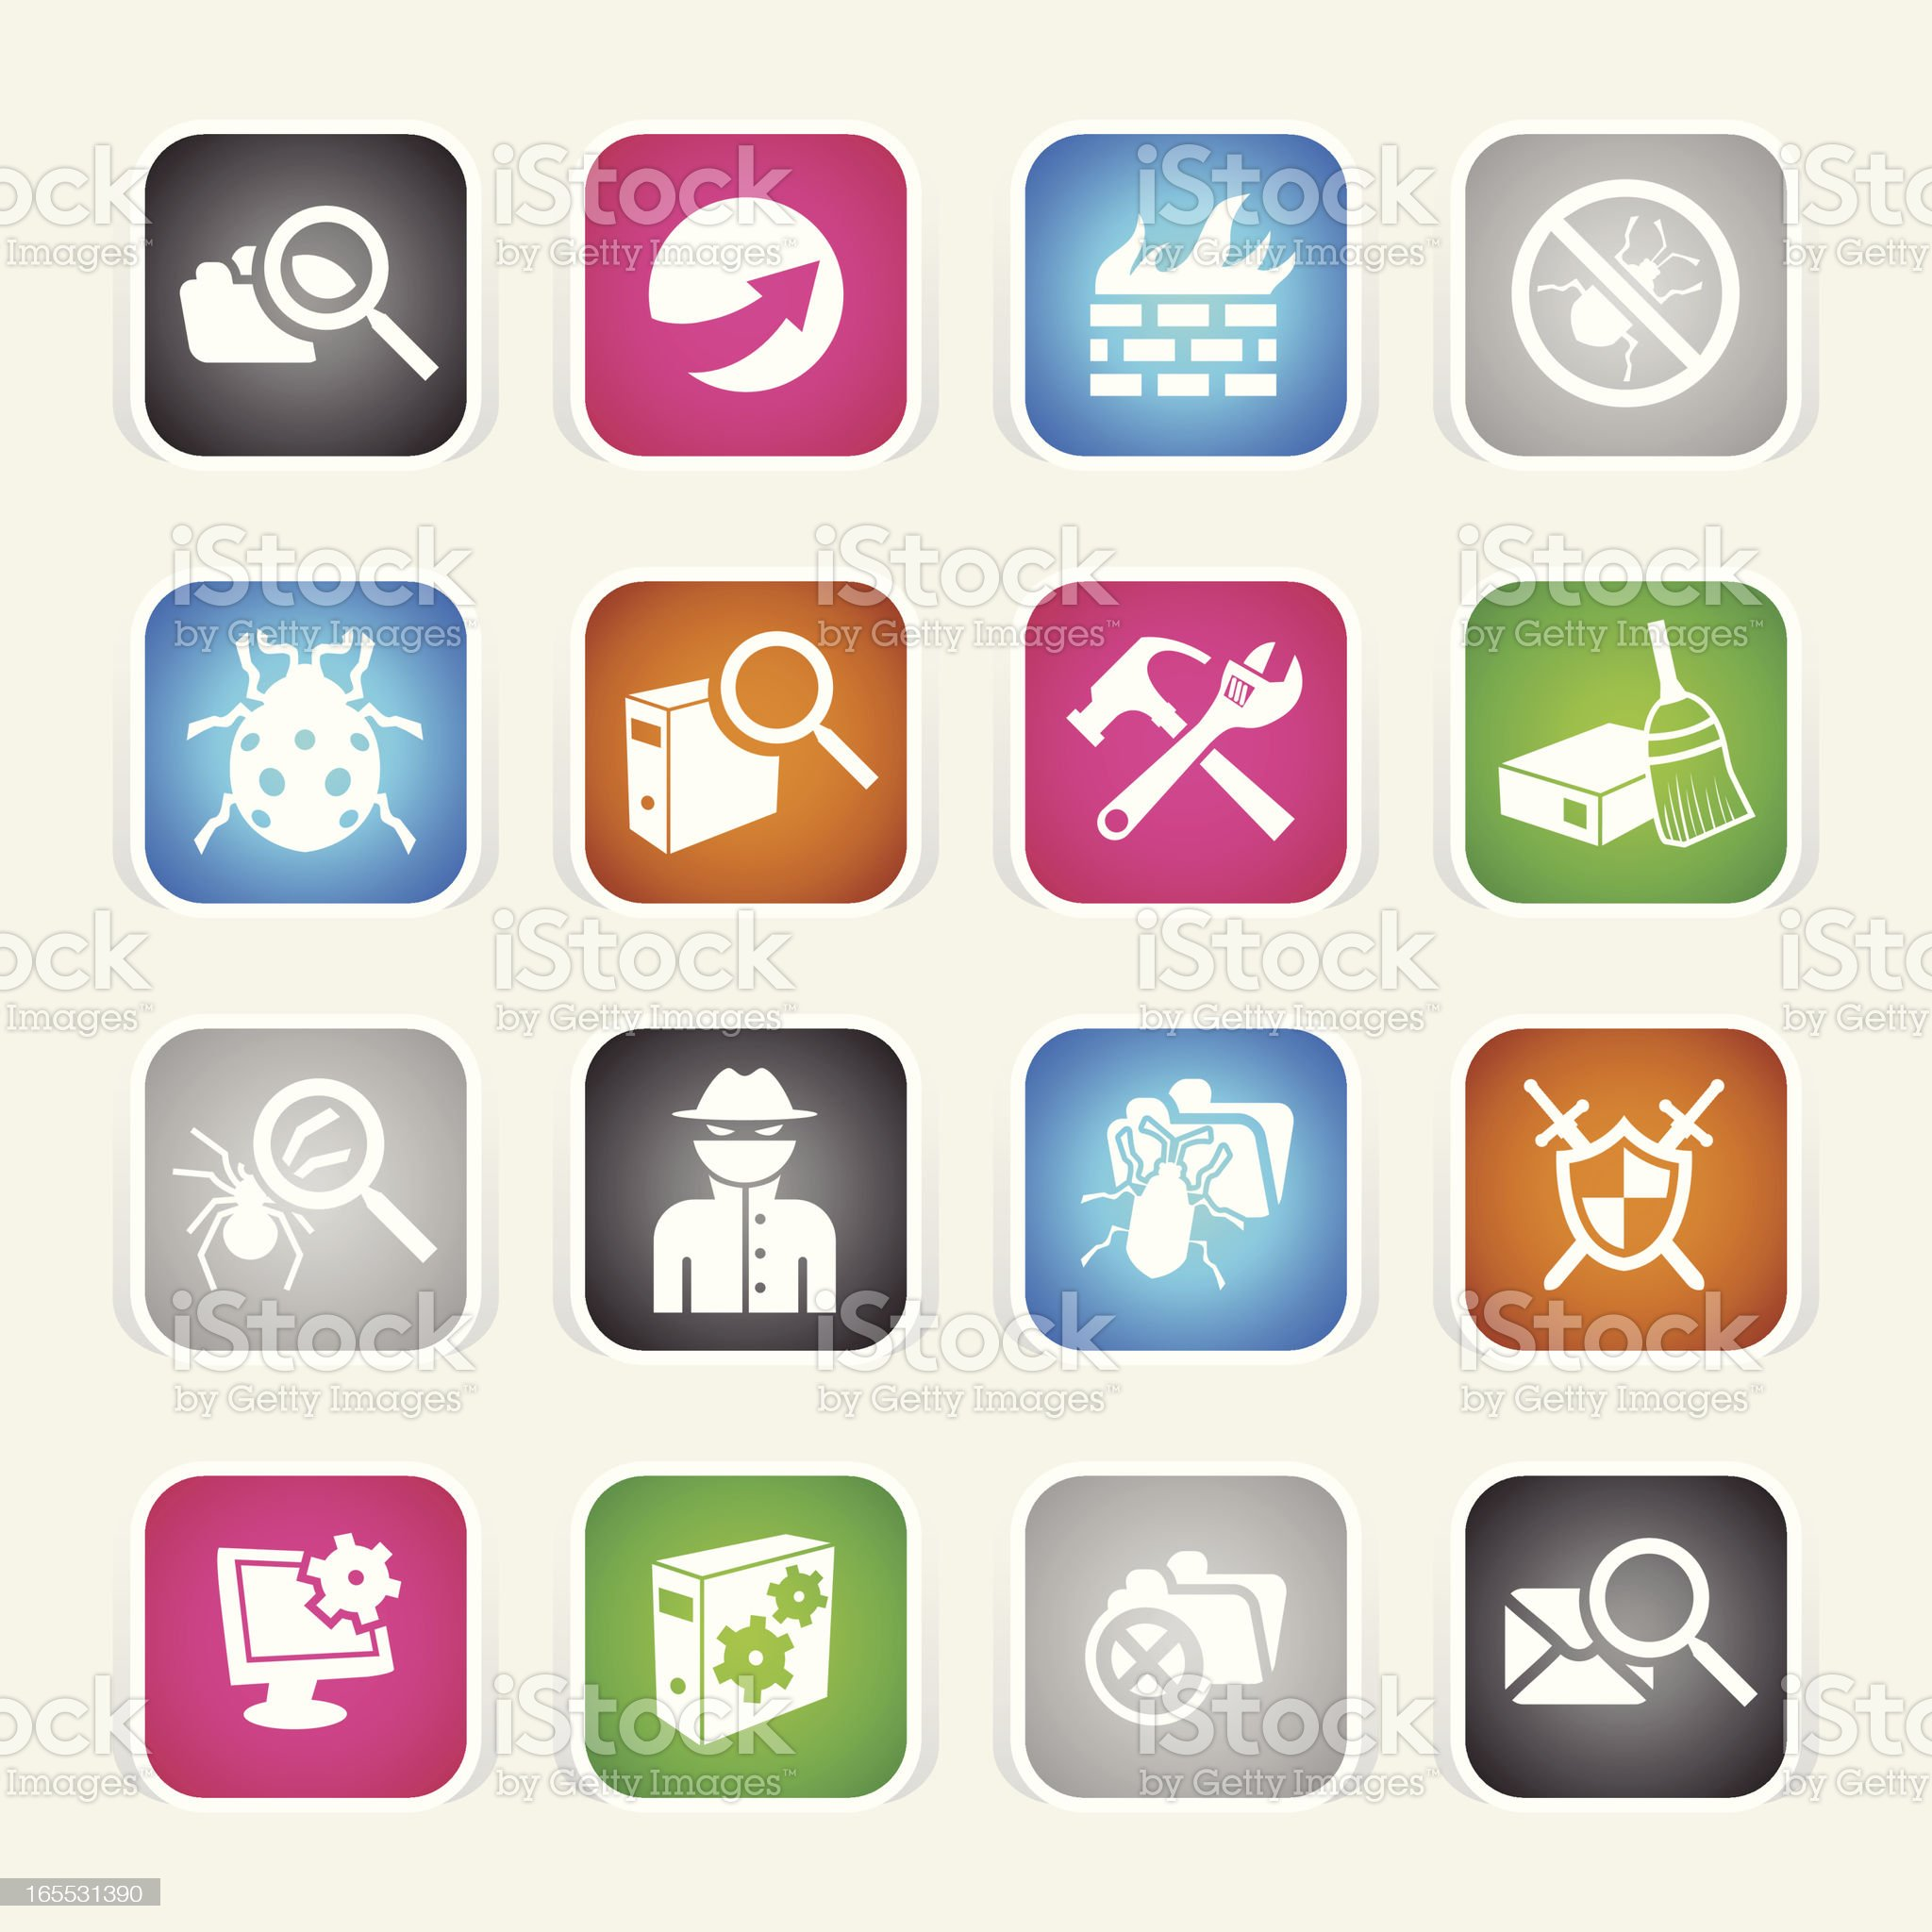 Multicolor Icons - Web Security royalty-free stock vector art